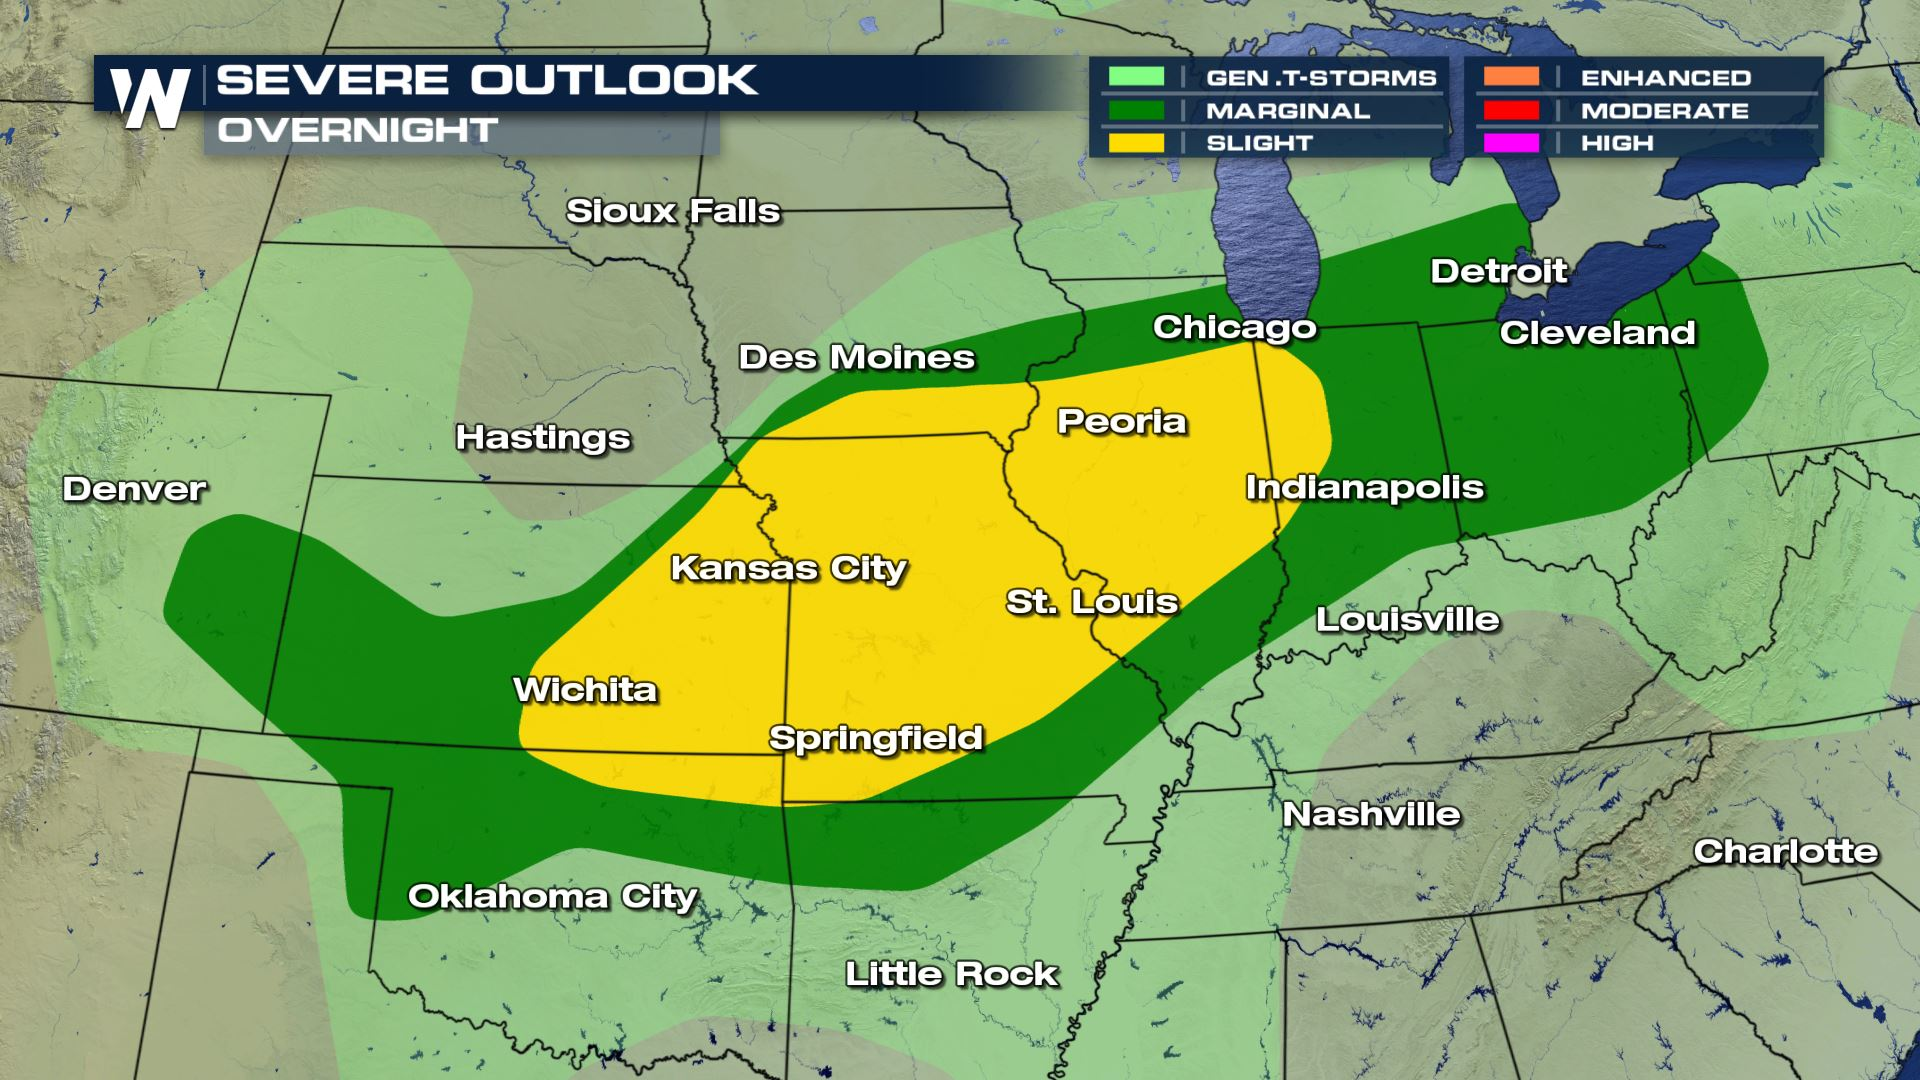 Overnight Severe Weather Possible in the Plains